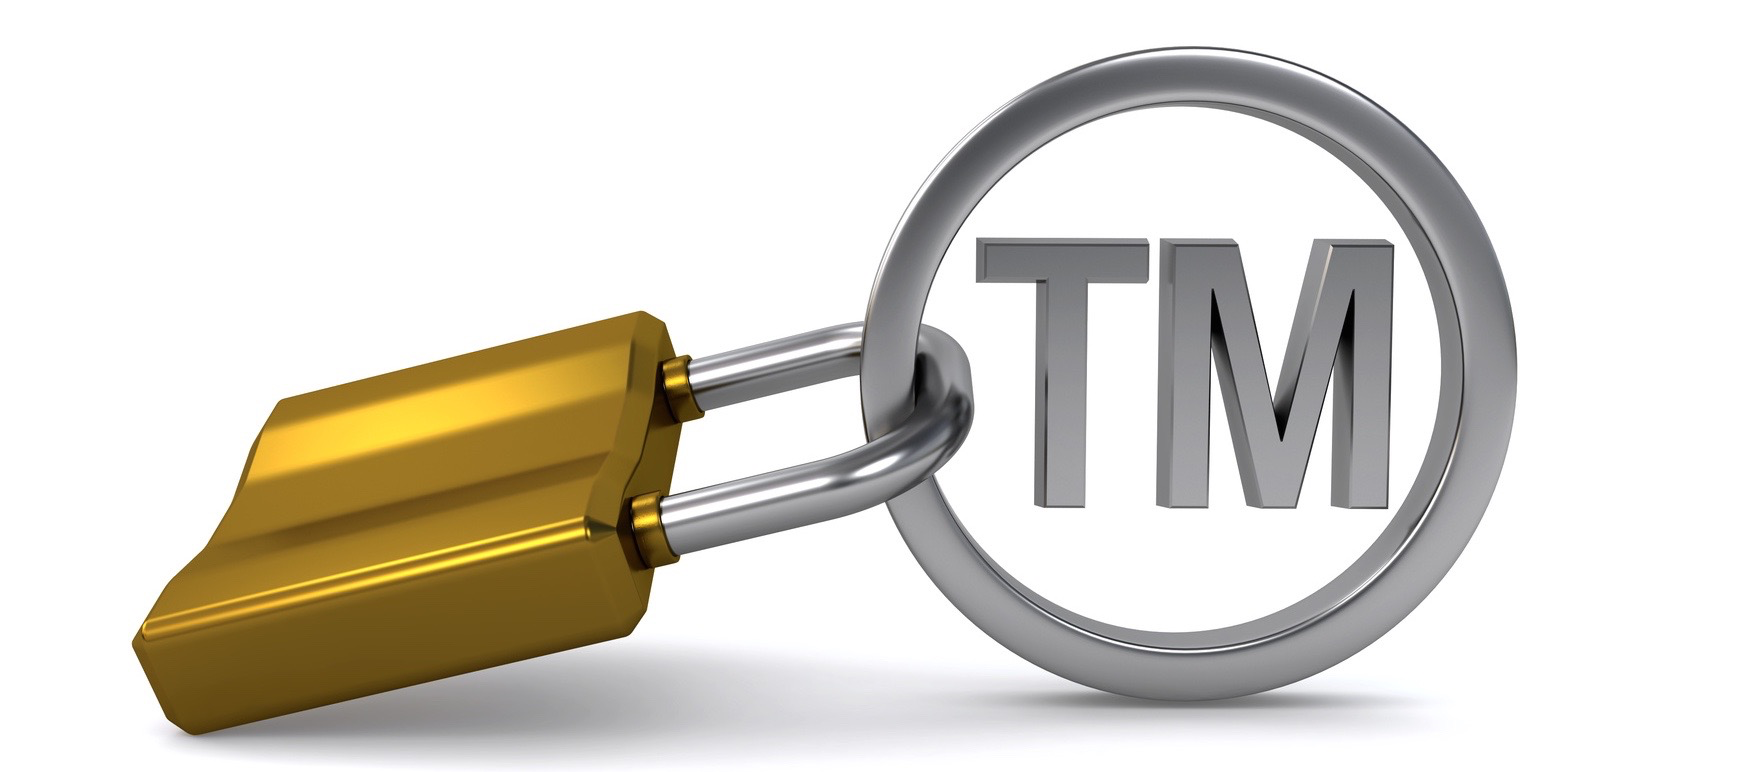 Do You Want to Know The Three Major Rights of Well Known Trademarks?